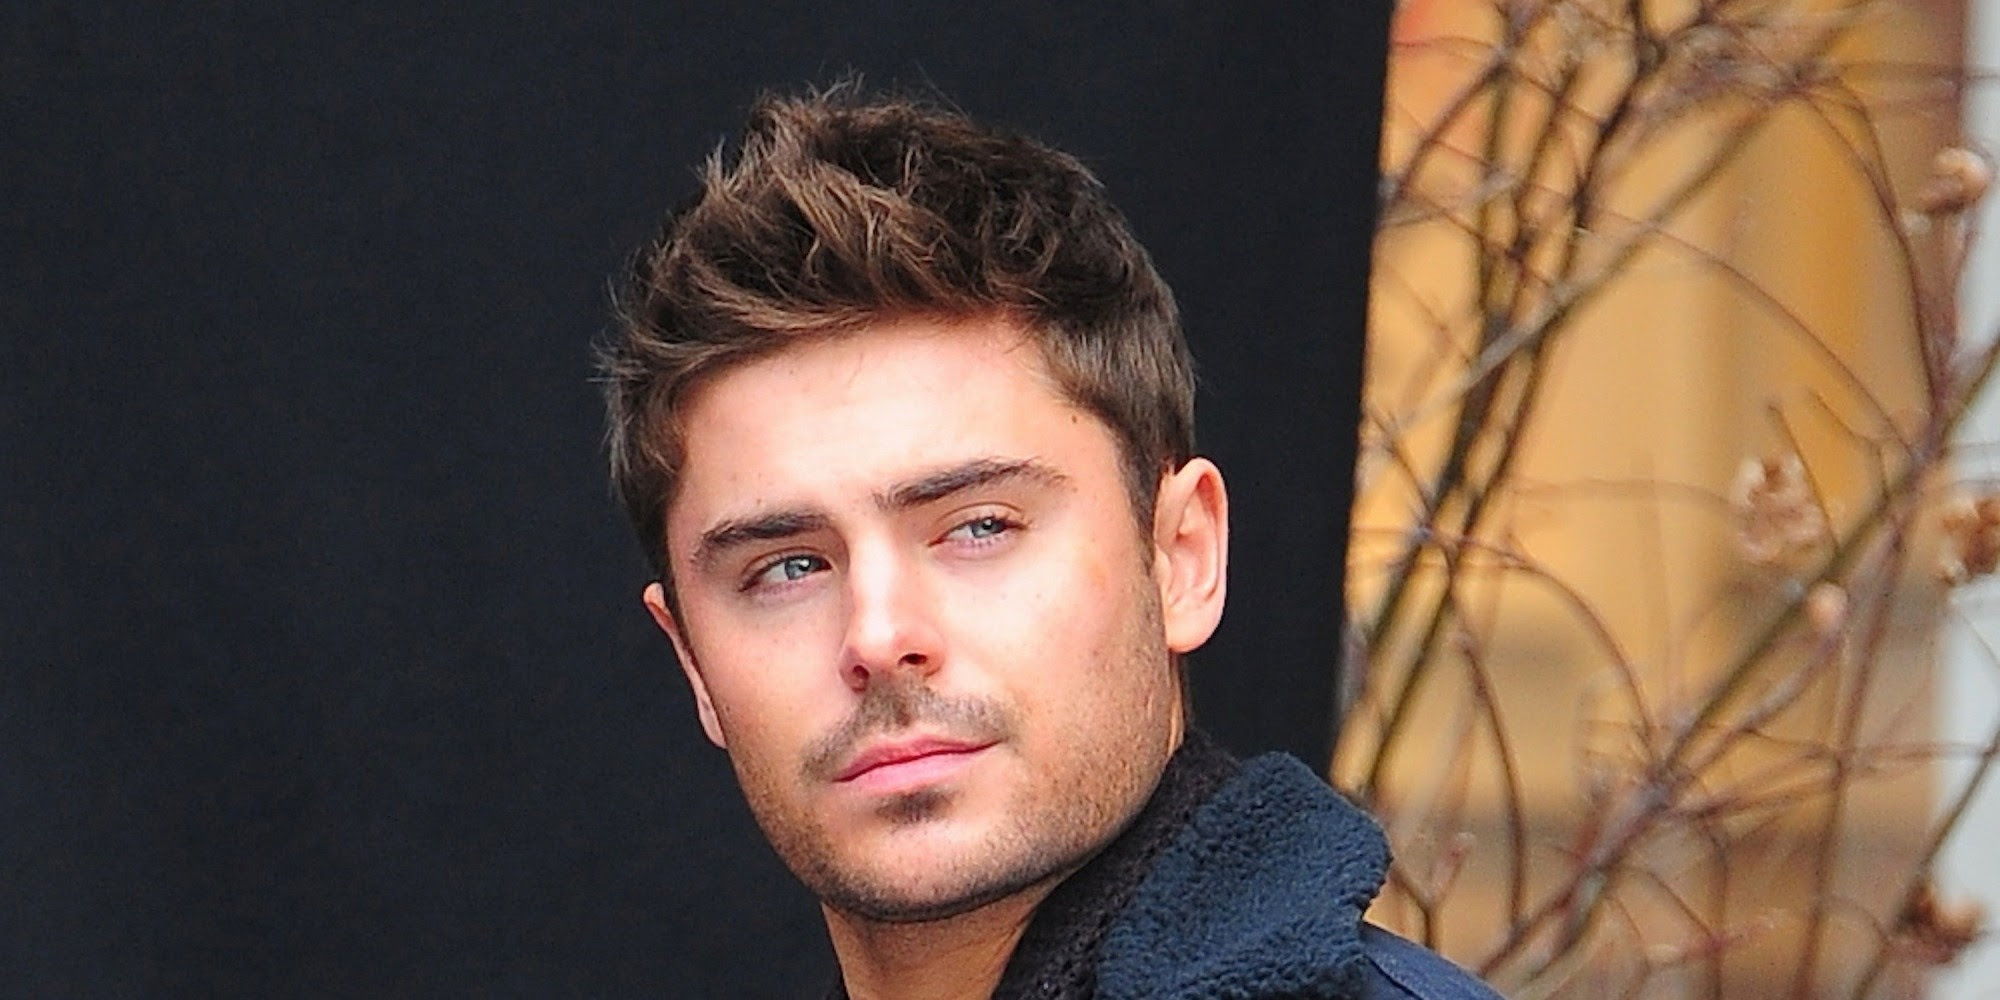 Zac Efron Will Sizzle This 2016